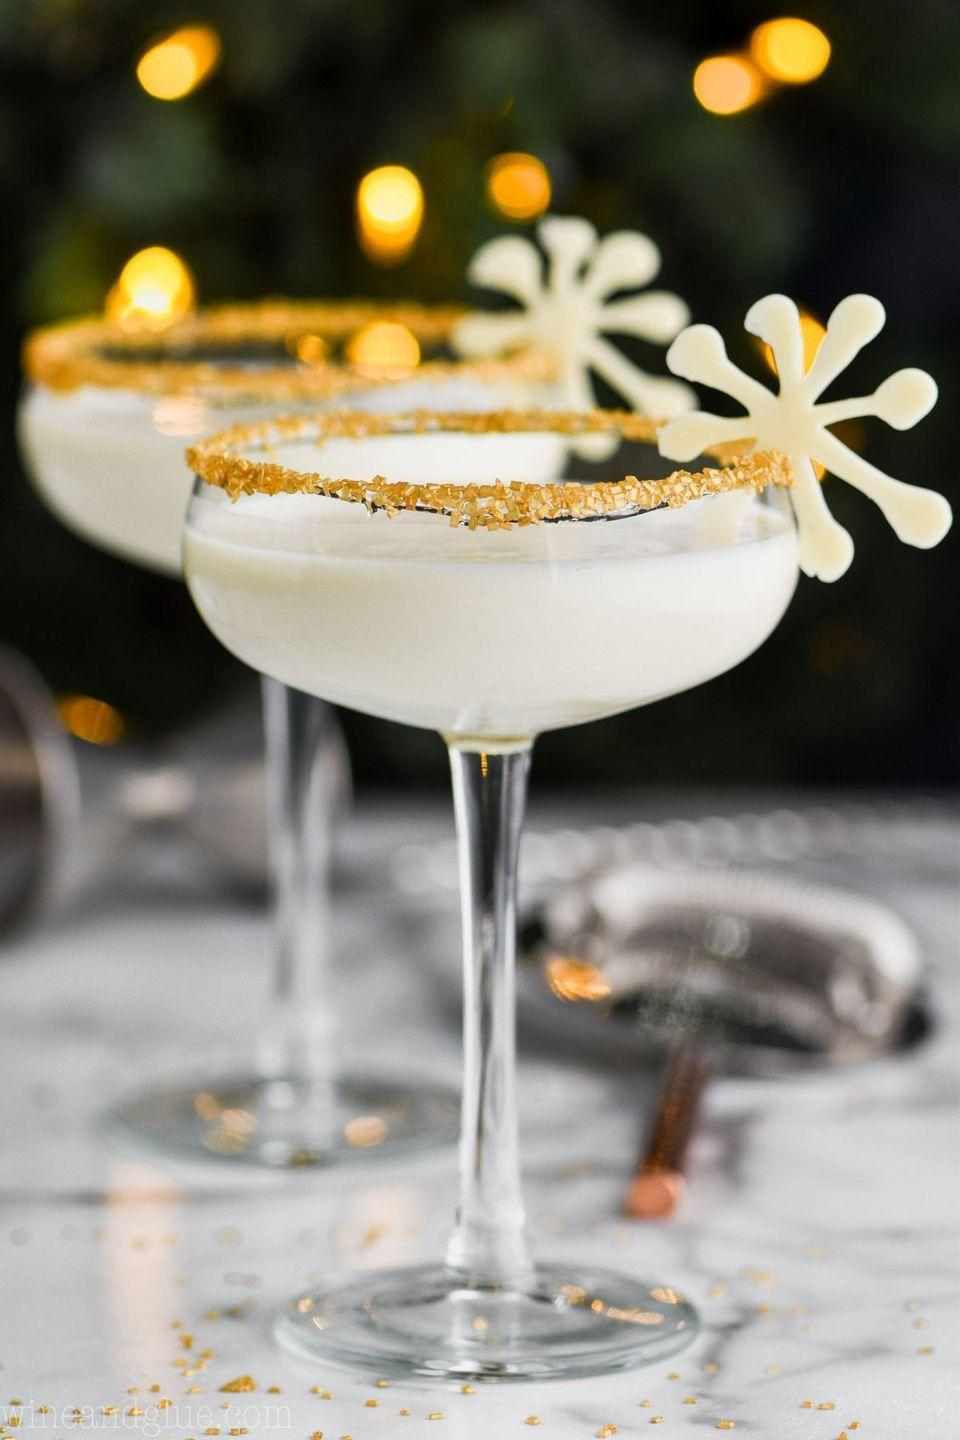 "<p>One sip of this rummy vanilla cocktail and you'll be singing <a href=""https://www.youtube.com/watch?v=IOkyBqGw2Wg"" rel=""nofollow noopener"" target=""_blank"" data-ylk=""slk:the song"" class=""link rapid-noclick-resp"">the song</a> right along with Bing Crosby.</p><p><strong>Get the recipe at <a href=""https://www.simplejoy.com/white-christmas-martini/"" rel=""nofollow noopener"" target=""_blank"" data-ylk=""slk:Simple Joy"" class=""link rapid-noclick-resp"">Simple Joy</a>.</strong></p>"